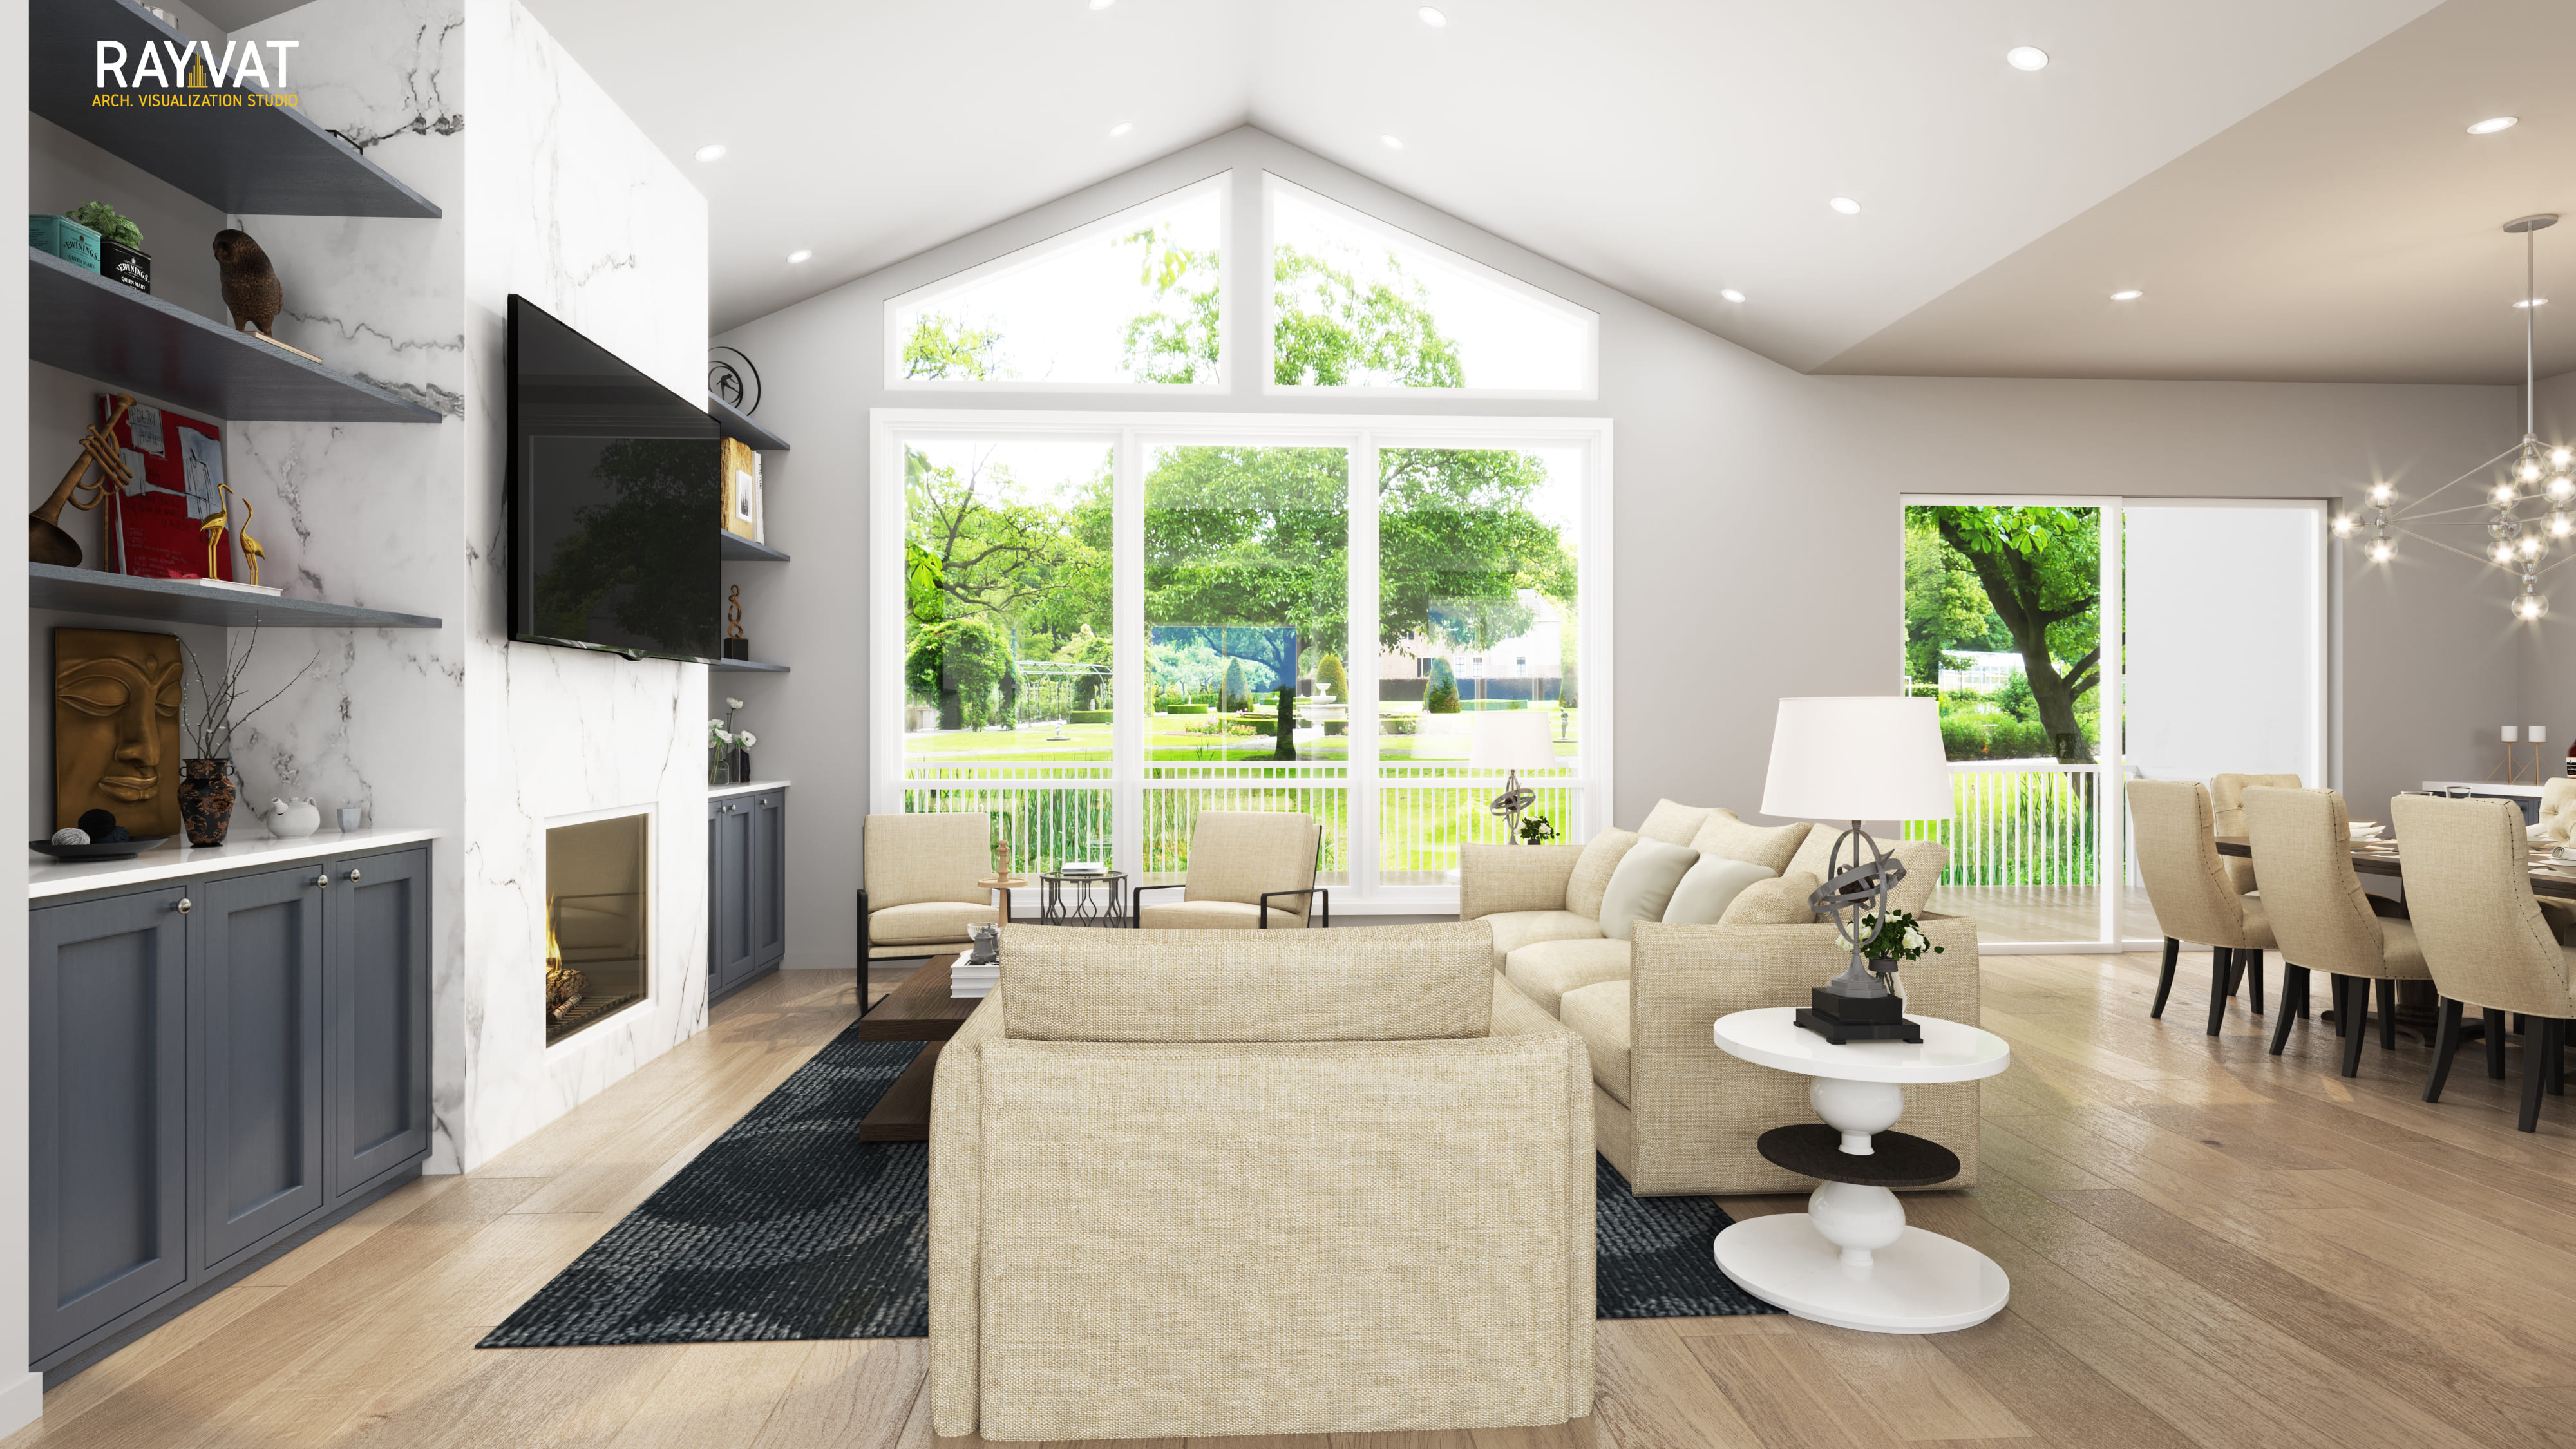 3D Rendering Services Aurora, Illinois